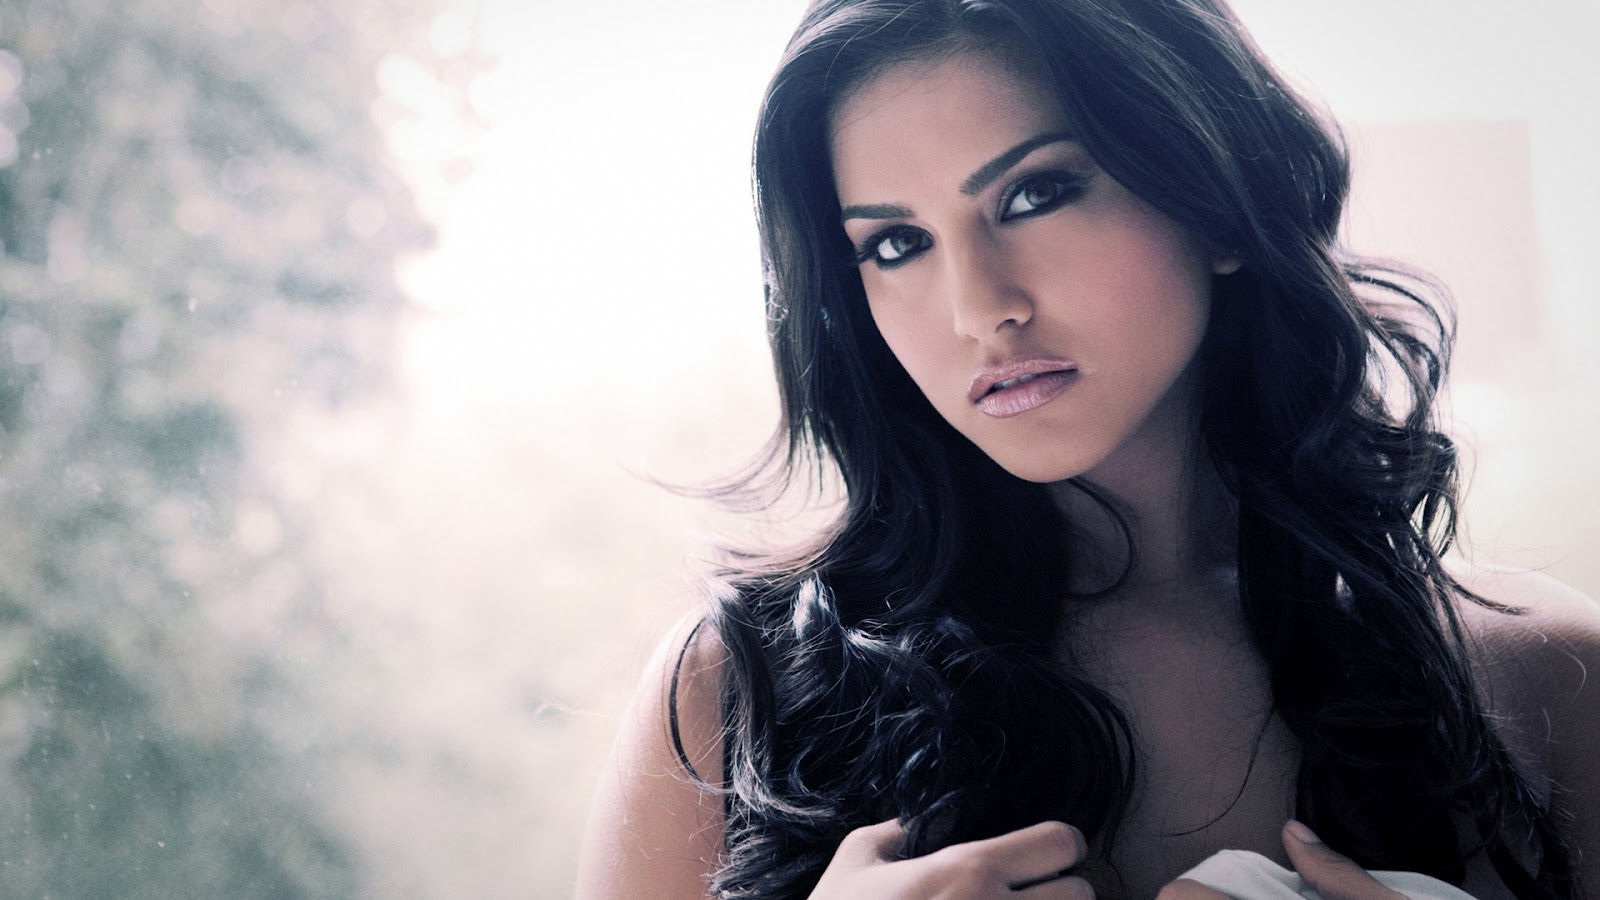 Sunny Leone Wallpaper - 13 - Fox News 5